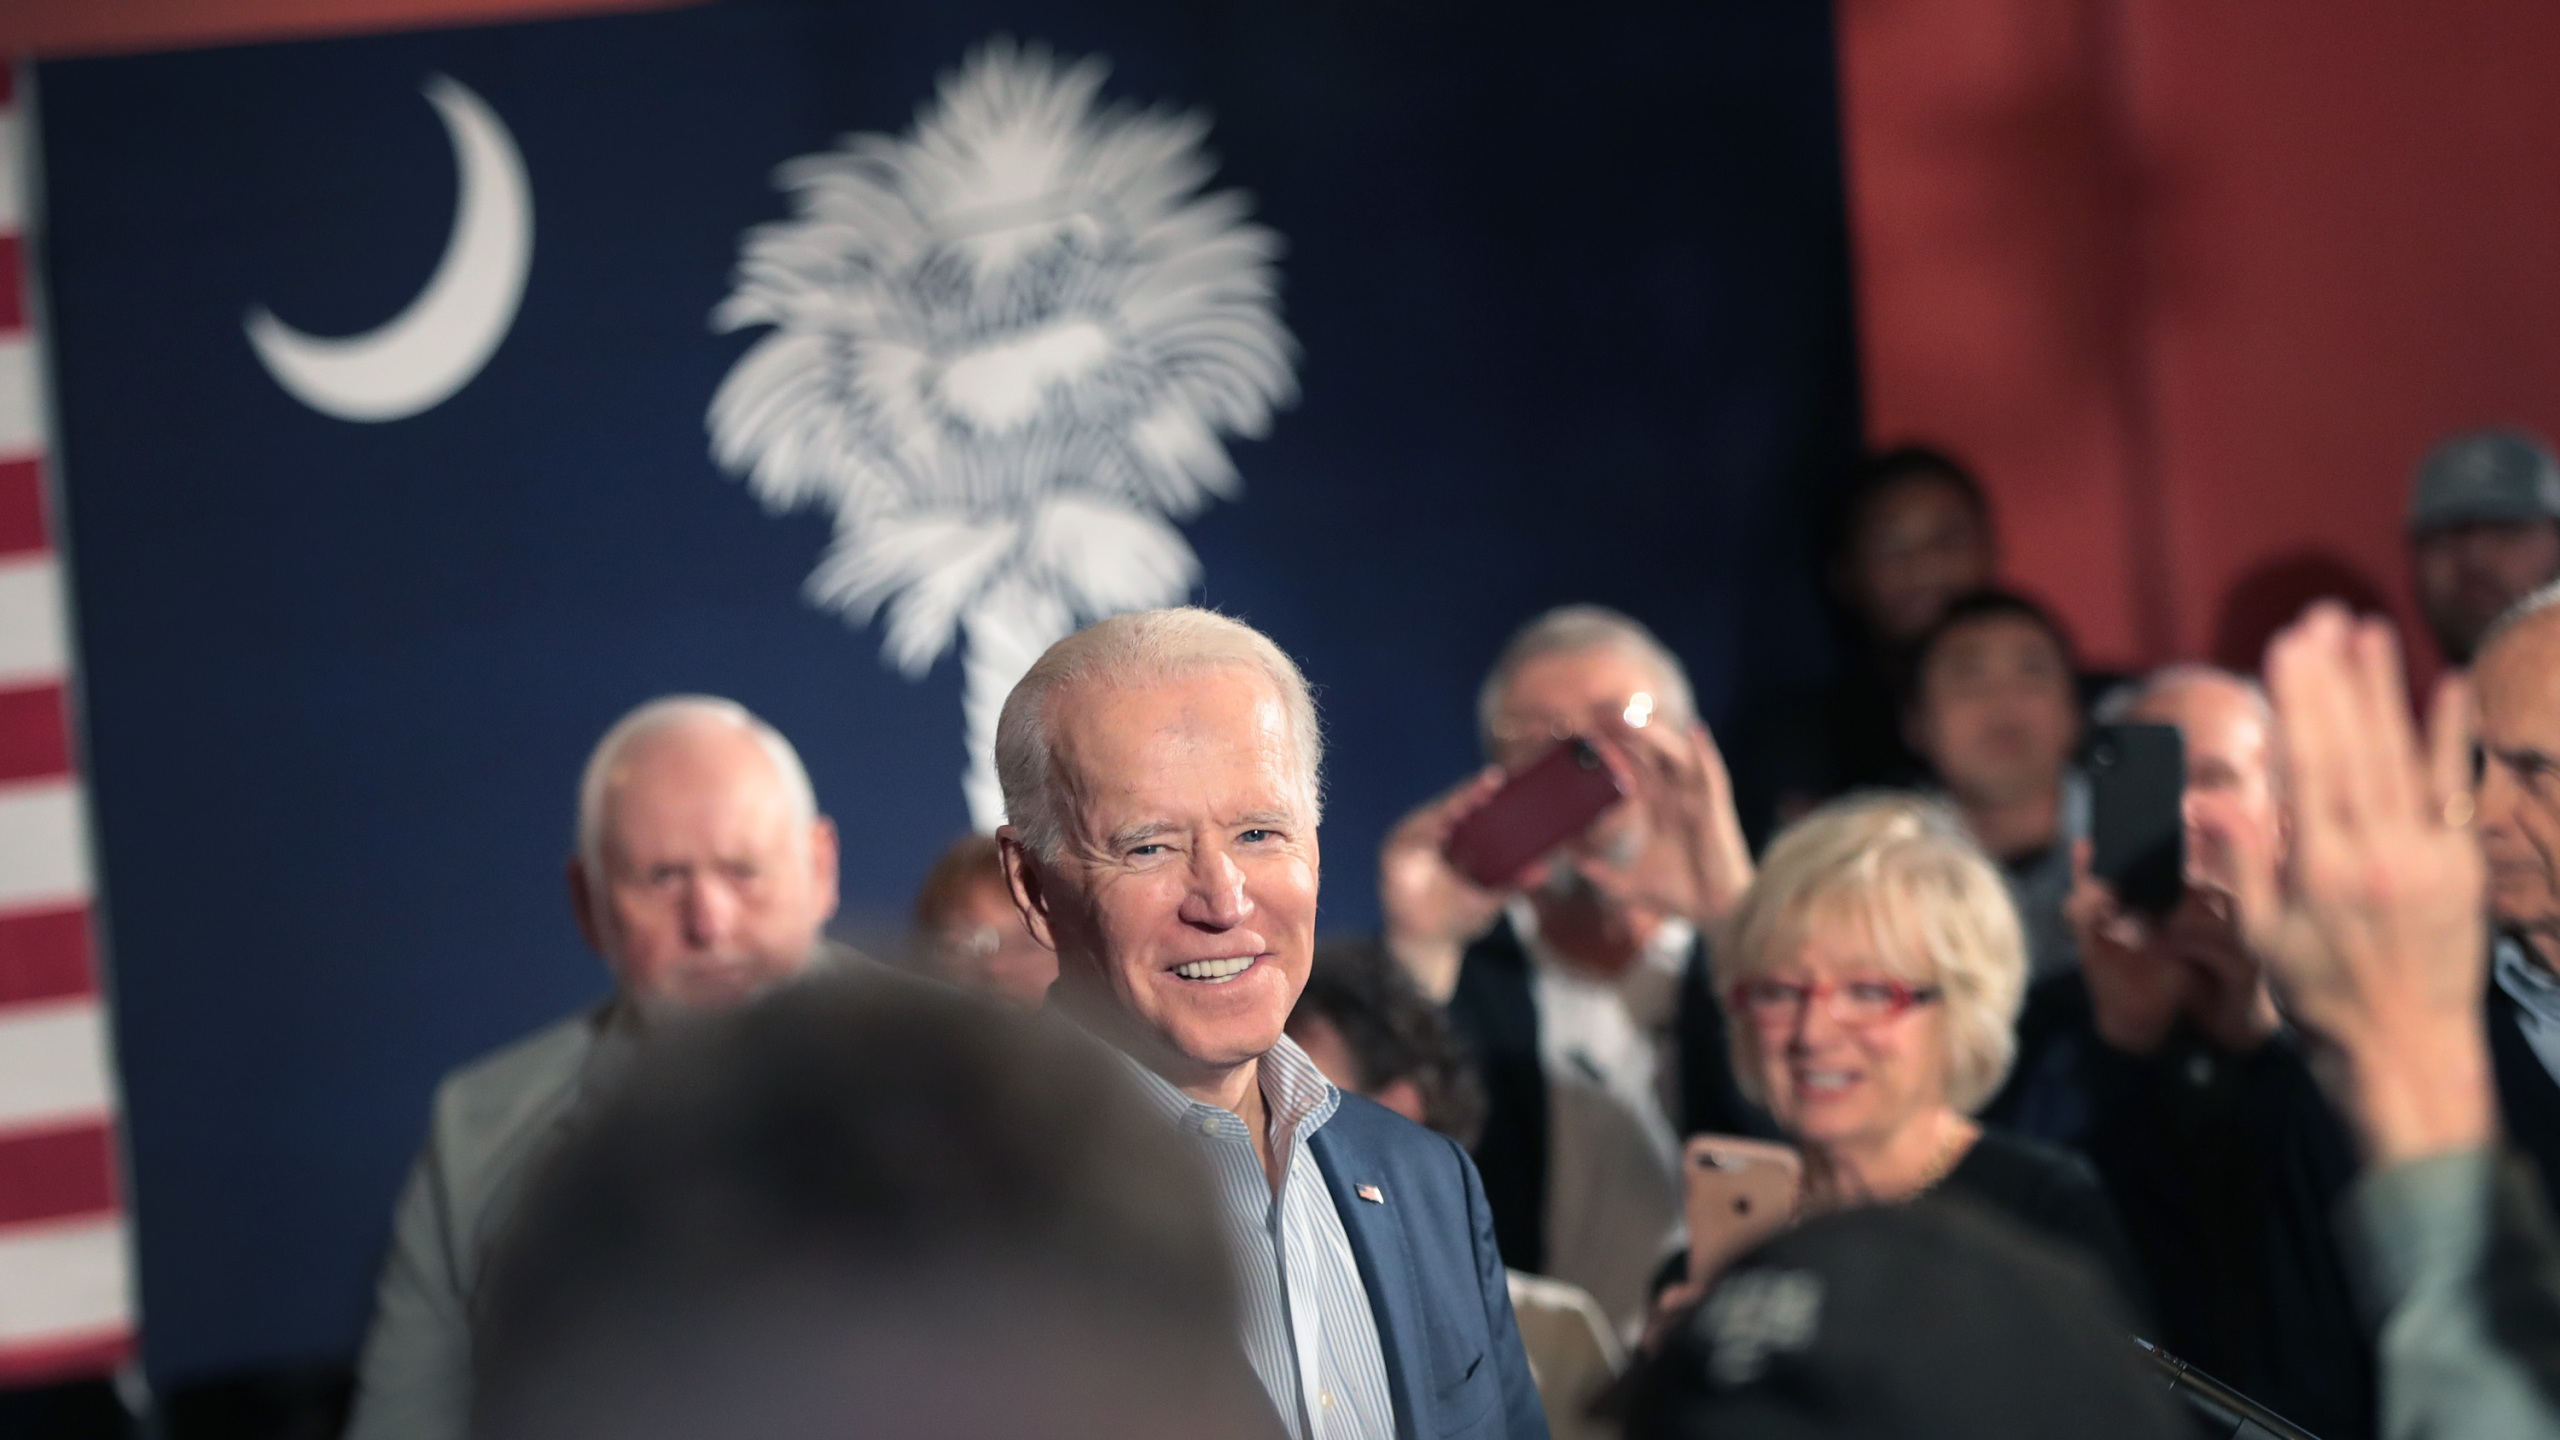 Democratic presidential candidate former Vice President Joe Biden speaks to guests during a campaign stop at the Winyah Indigo Society Hall on Feb. 26, 2020, in Georgetown, South Carolina. (Scott Olson/Getty Images)